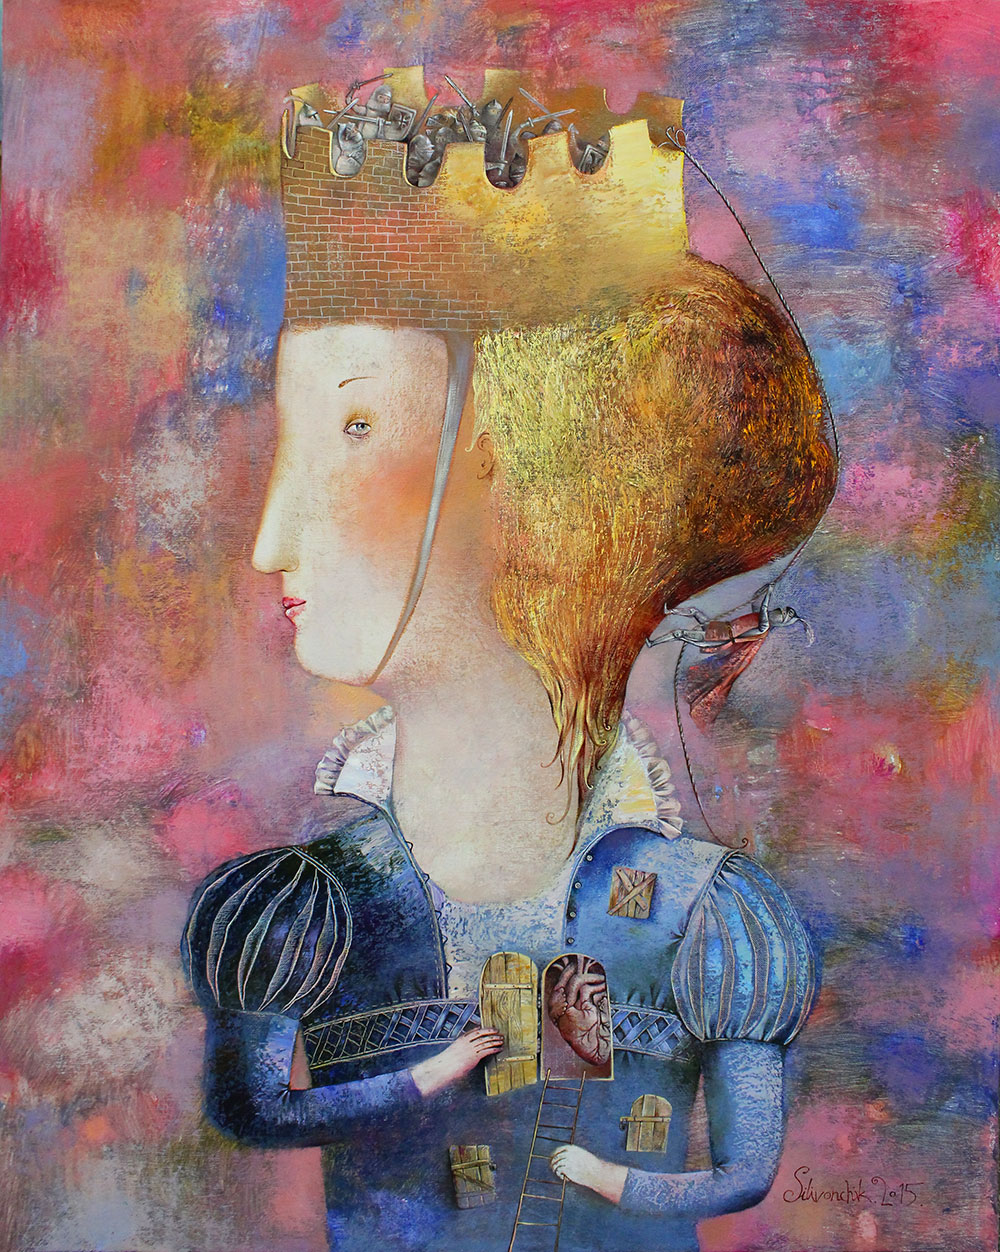 Knights of My Heart. 2015. 39 x 32 in. (100x80cm). Oil on Canvas.